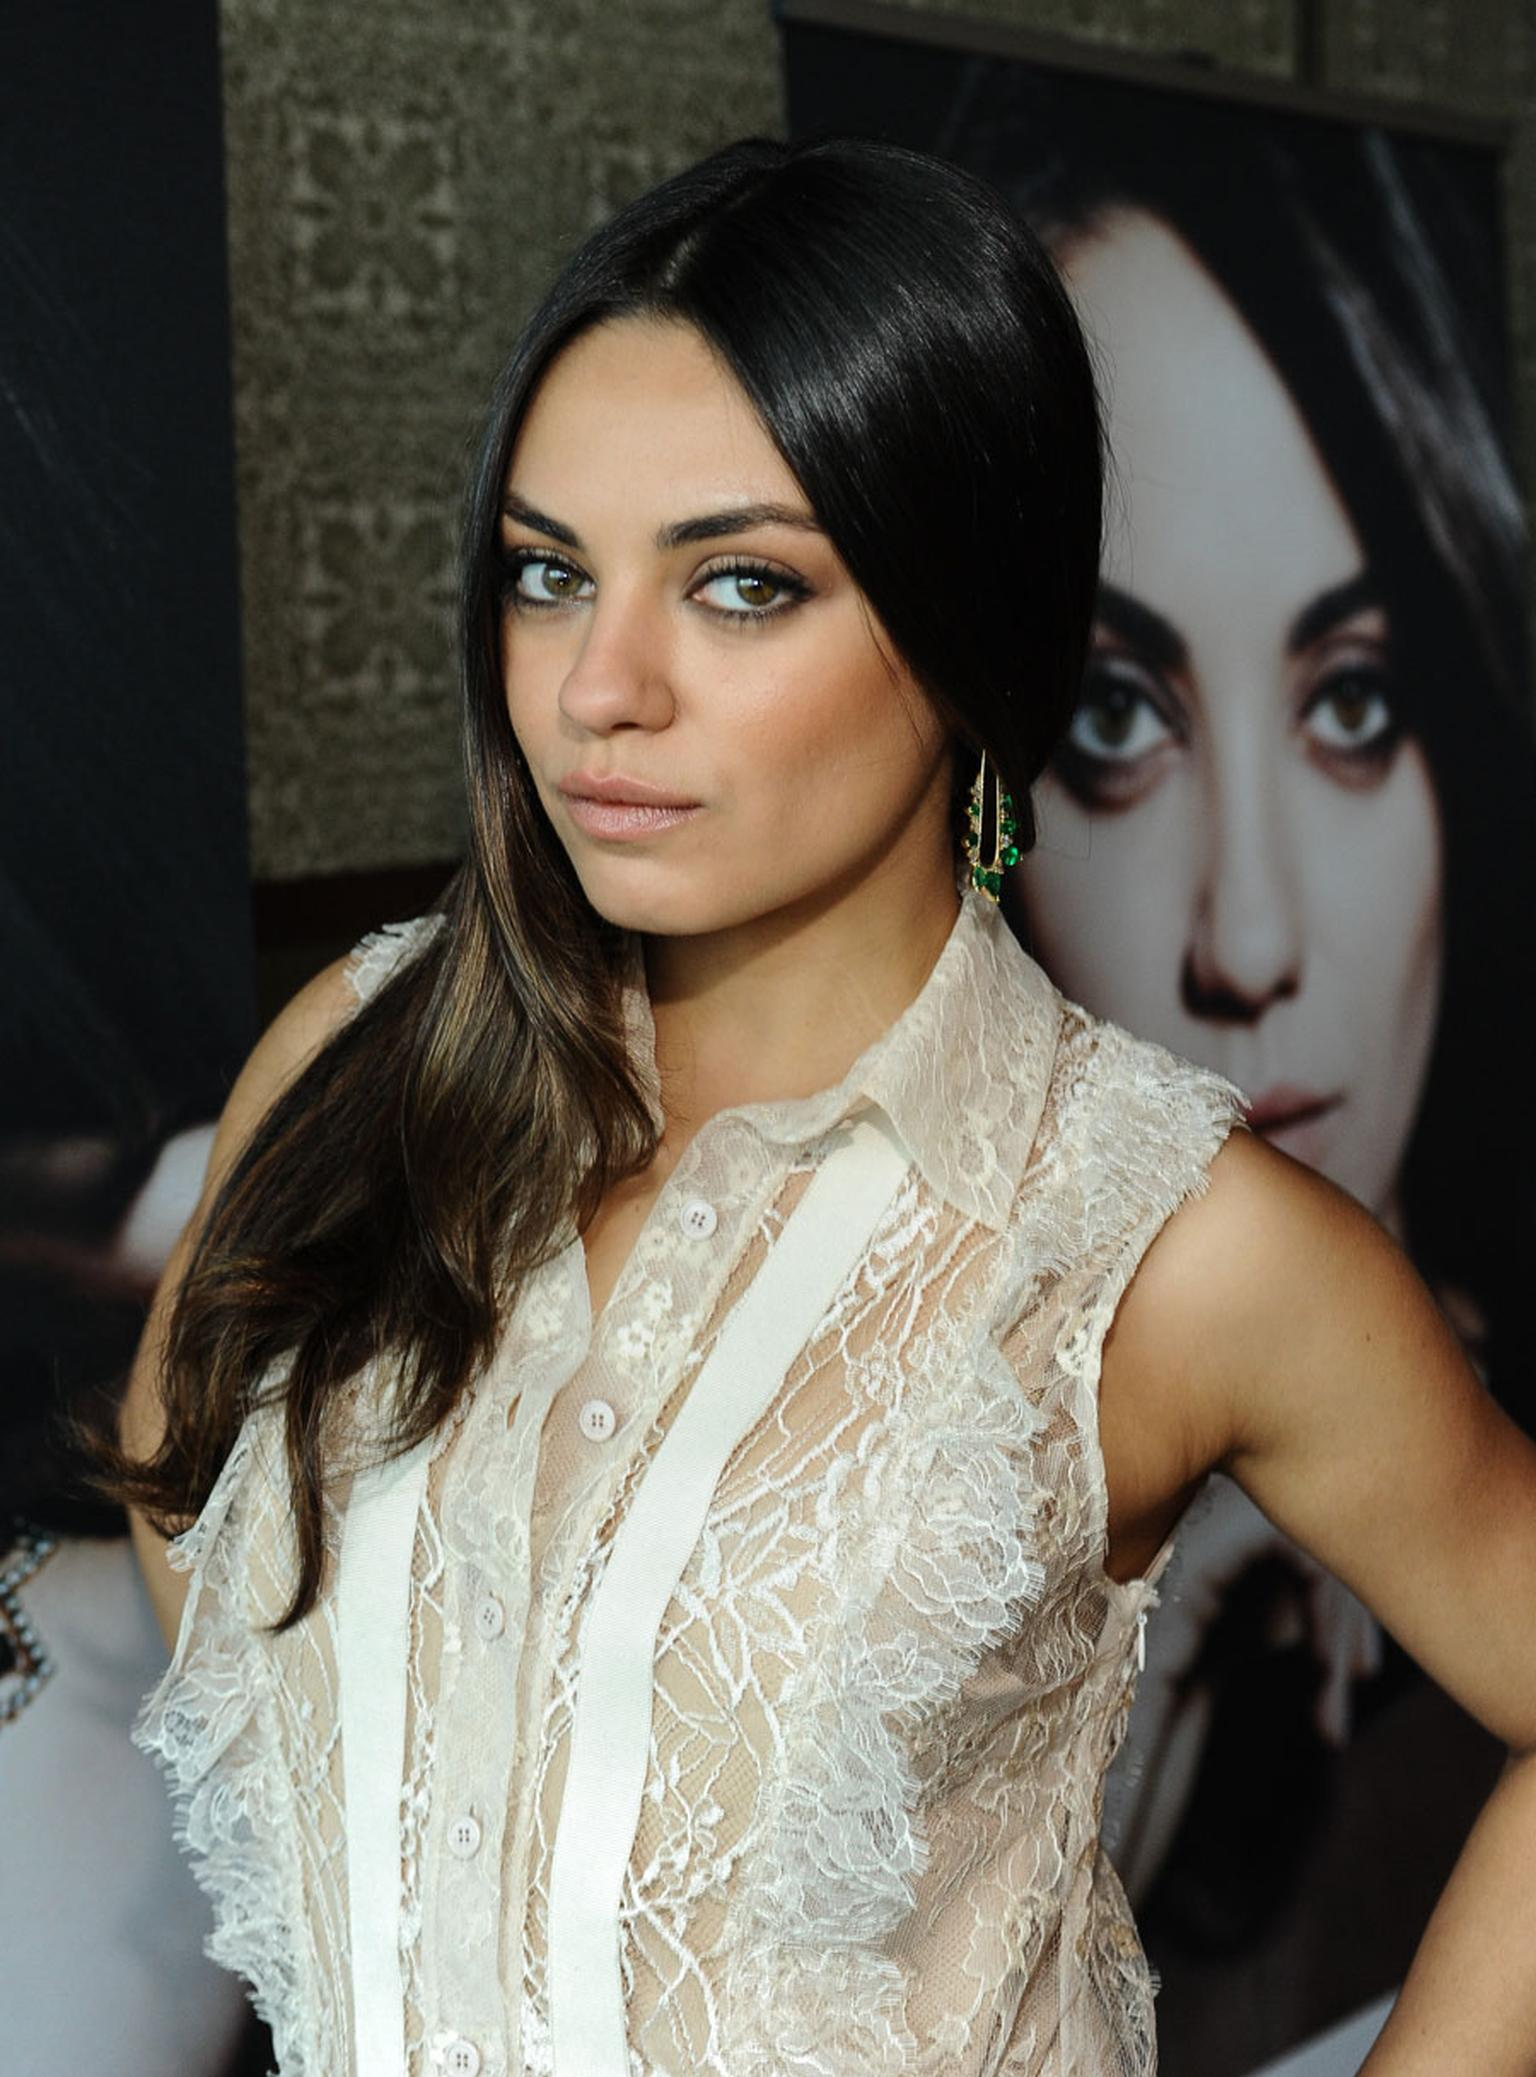 Gemfields-Mila-Kunis-wears-Fernando-Jorge--earrings-featuring-Gemfields-Zambian-emerald